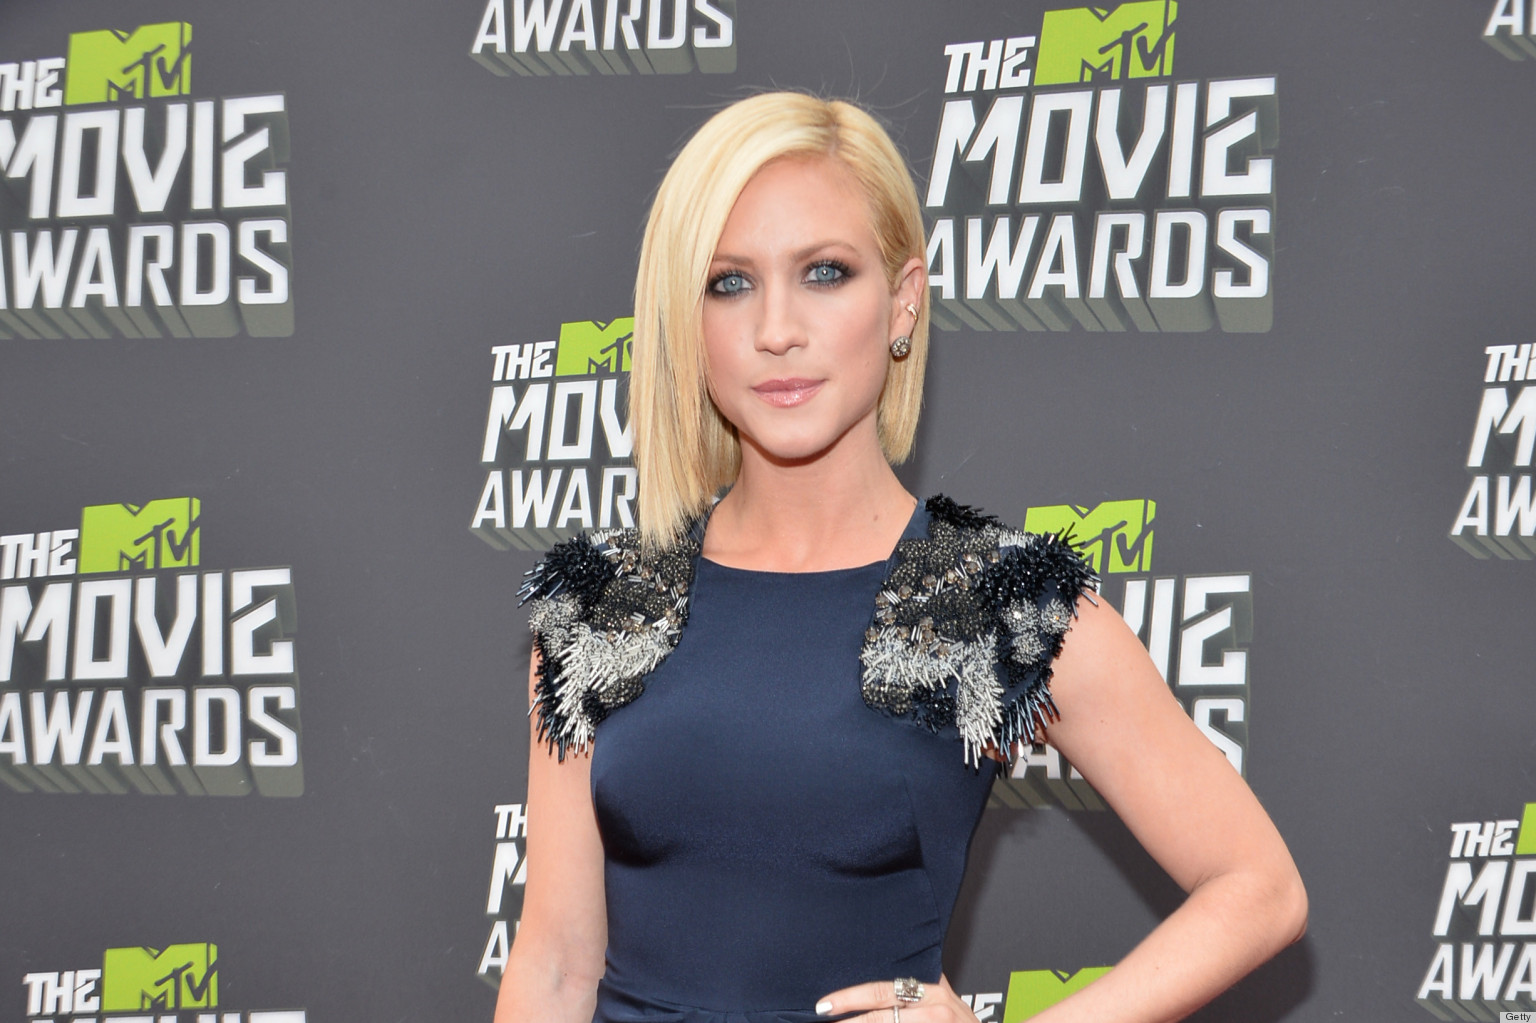 PHOTOS: See The 2013 MTV Movie Awards Red Carpet!